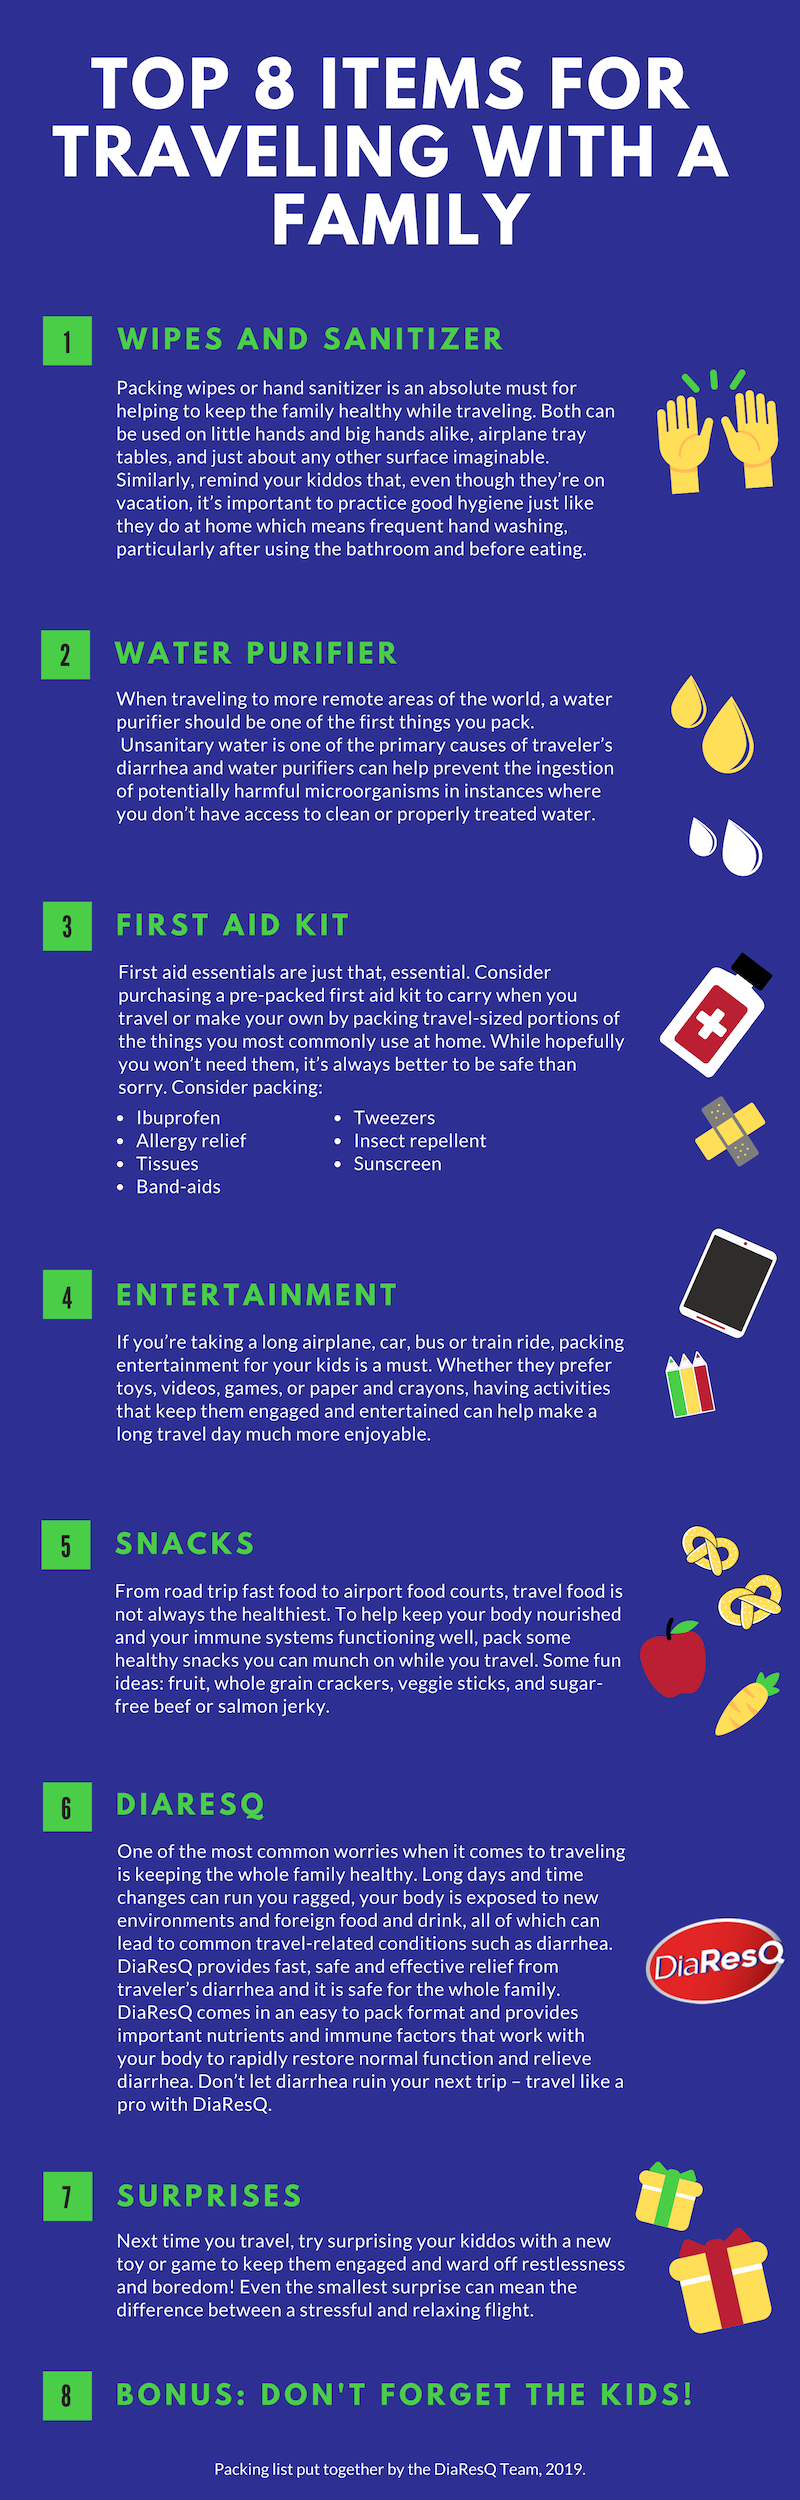 Infographic: Tips for Traveling with Kids from DiaResQ